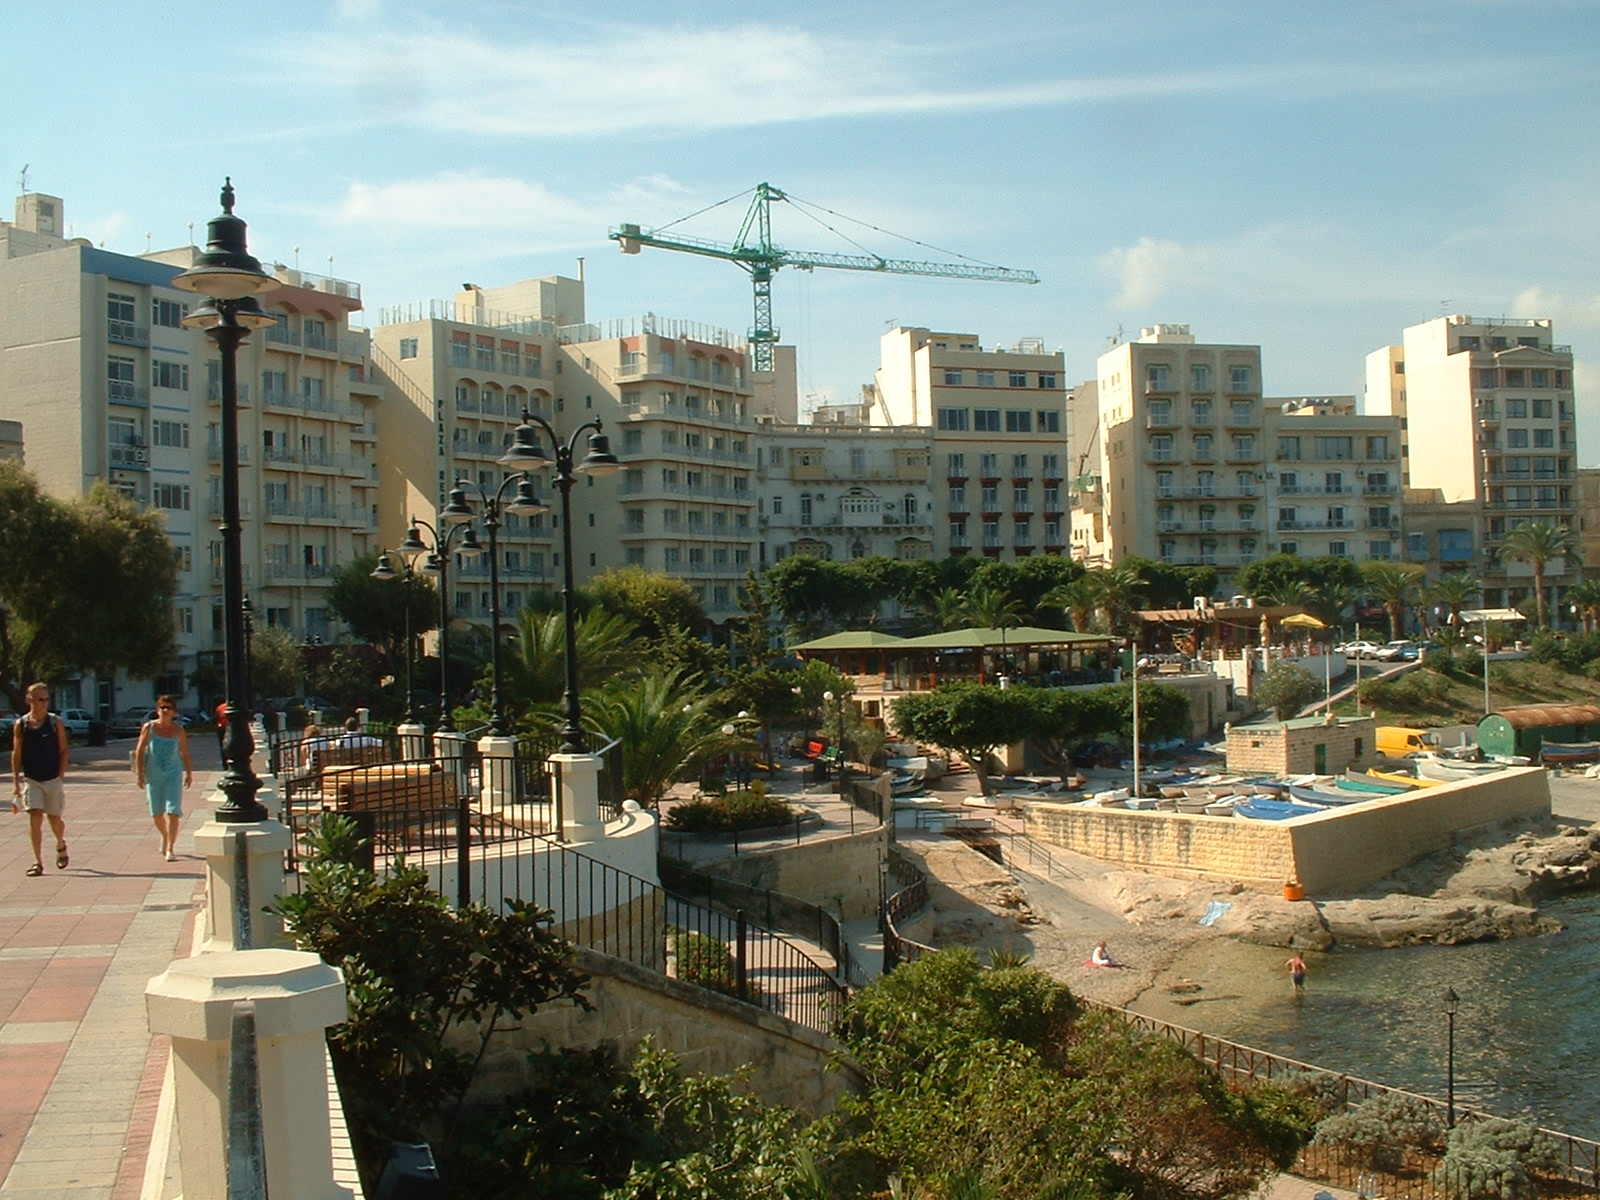 Sliema Malta Pictures and videos and news  CitiesTipscom